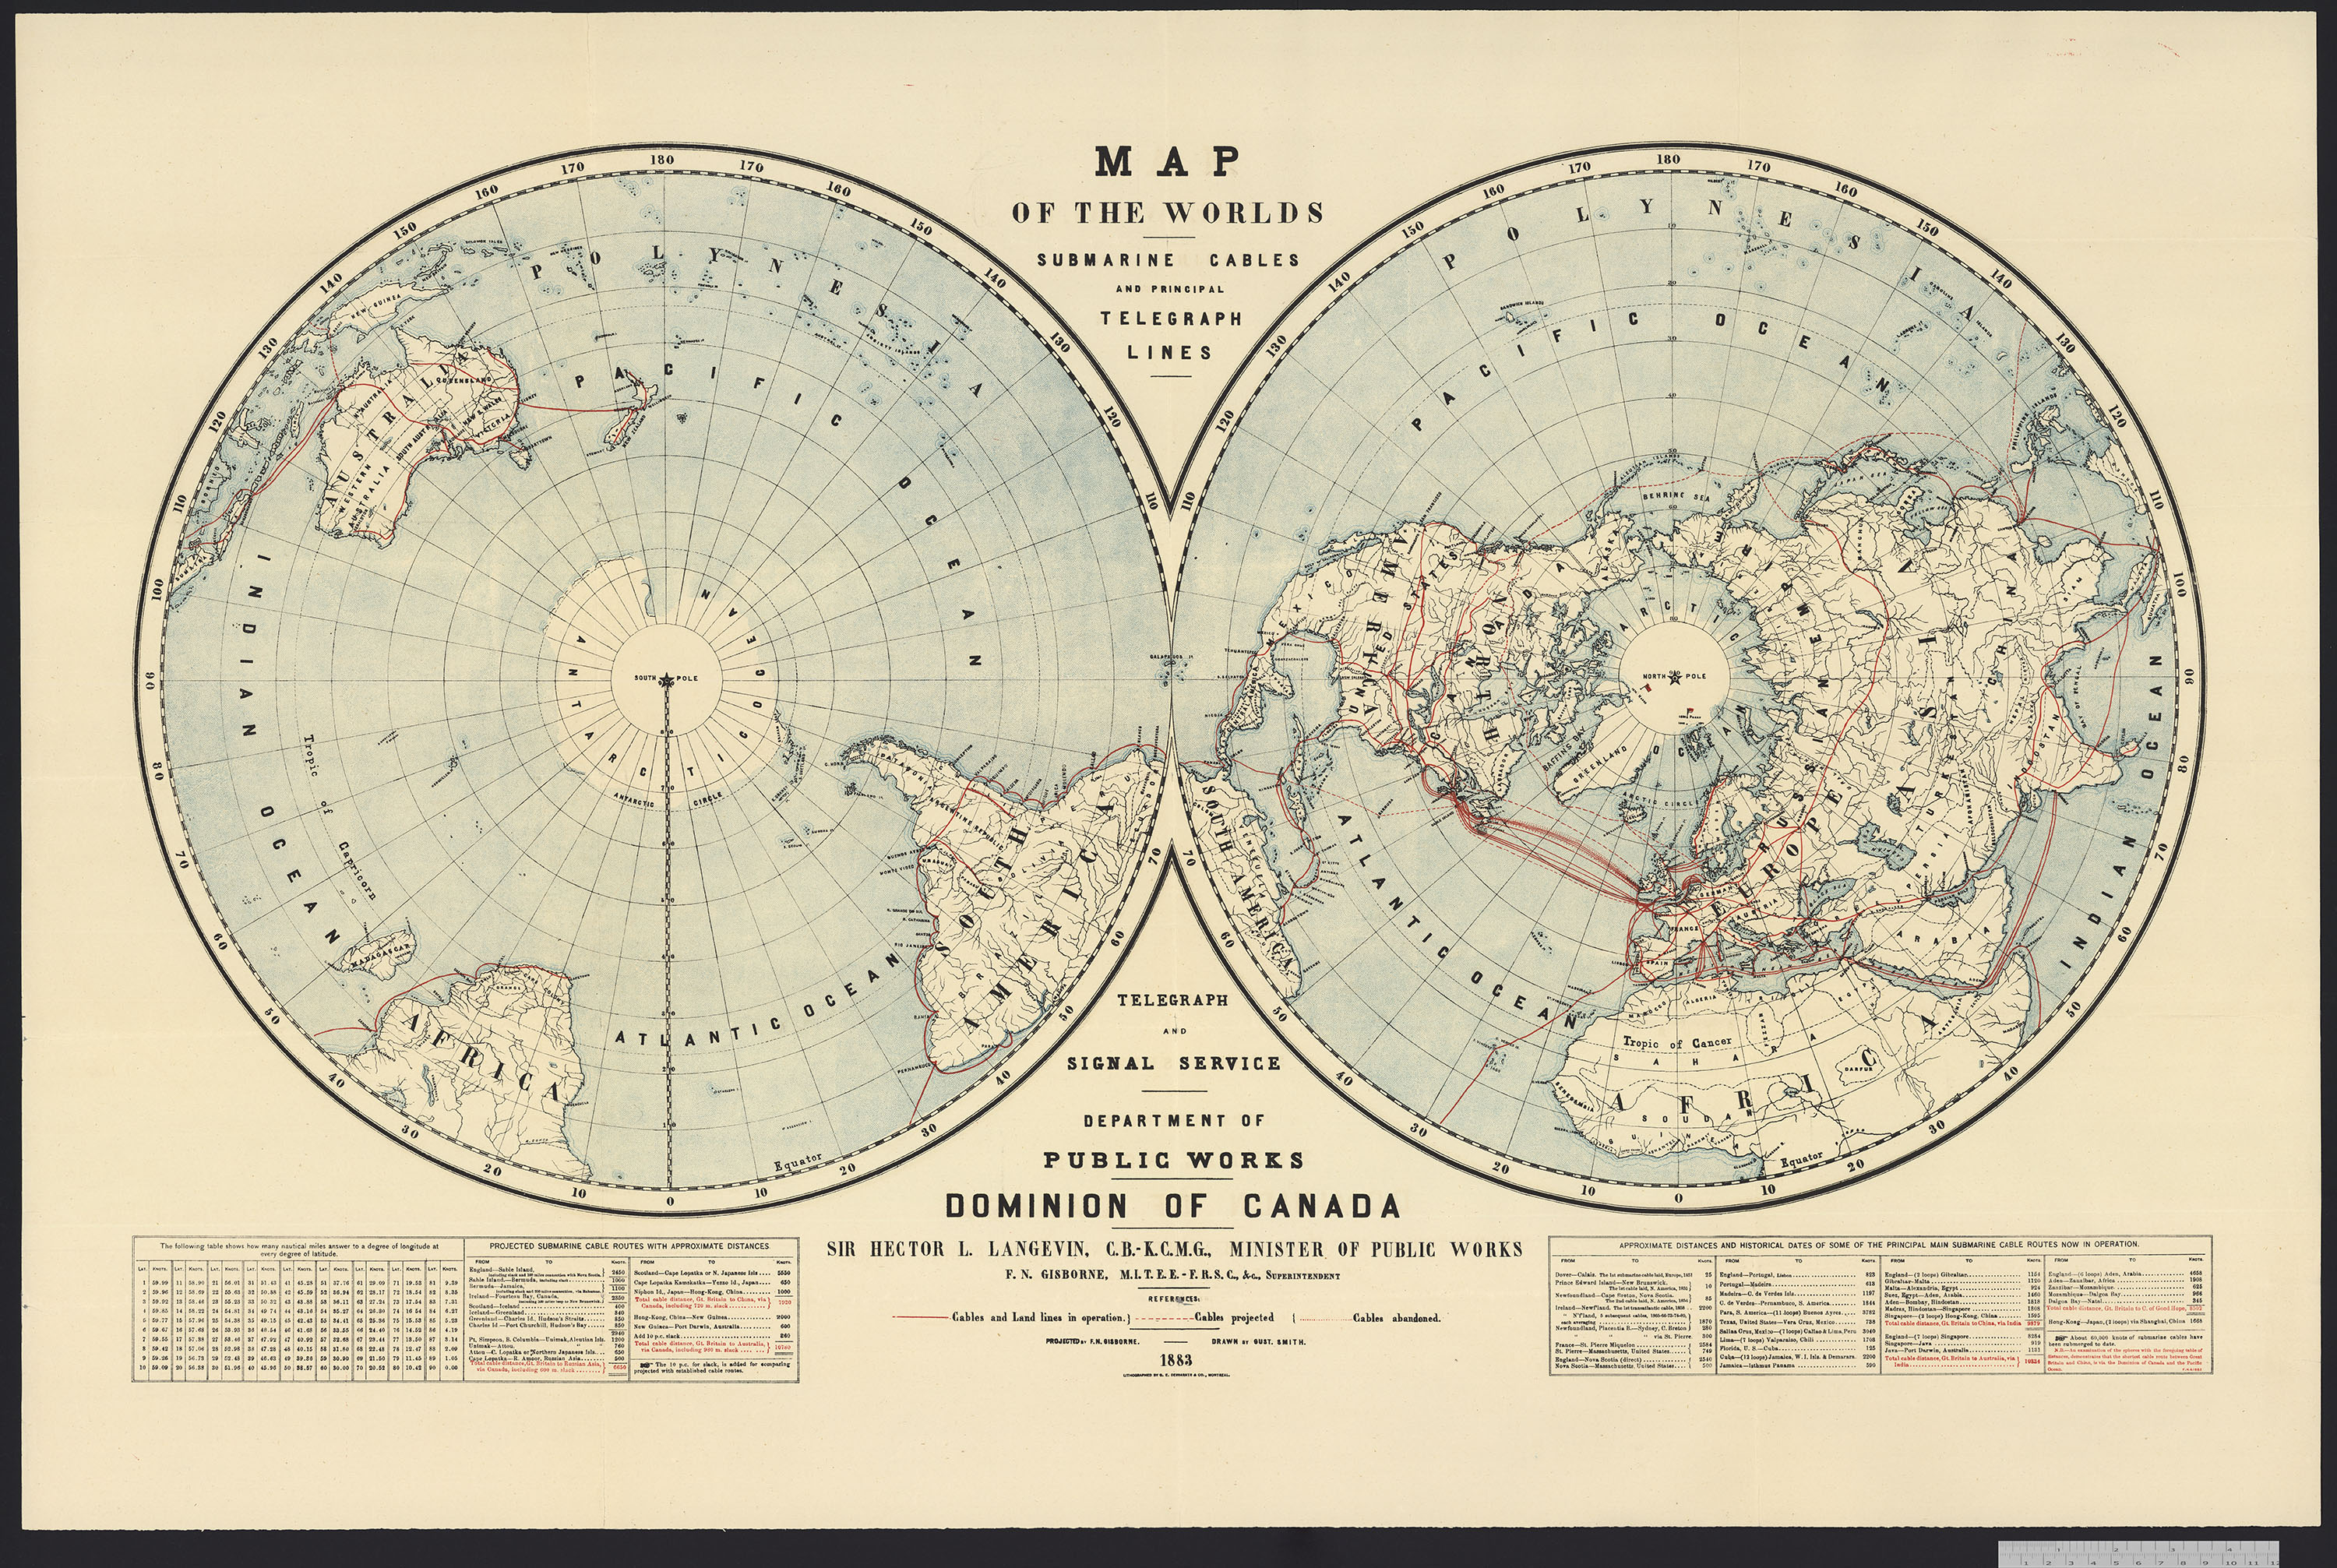 North and south map of the world showing telegraph lines across the Atlantic and overland.